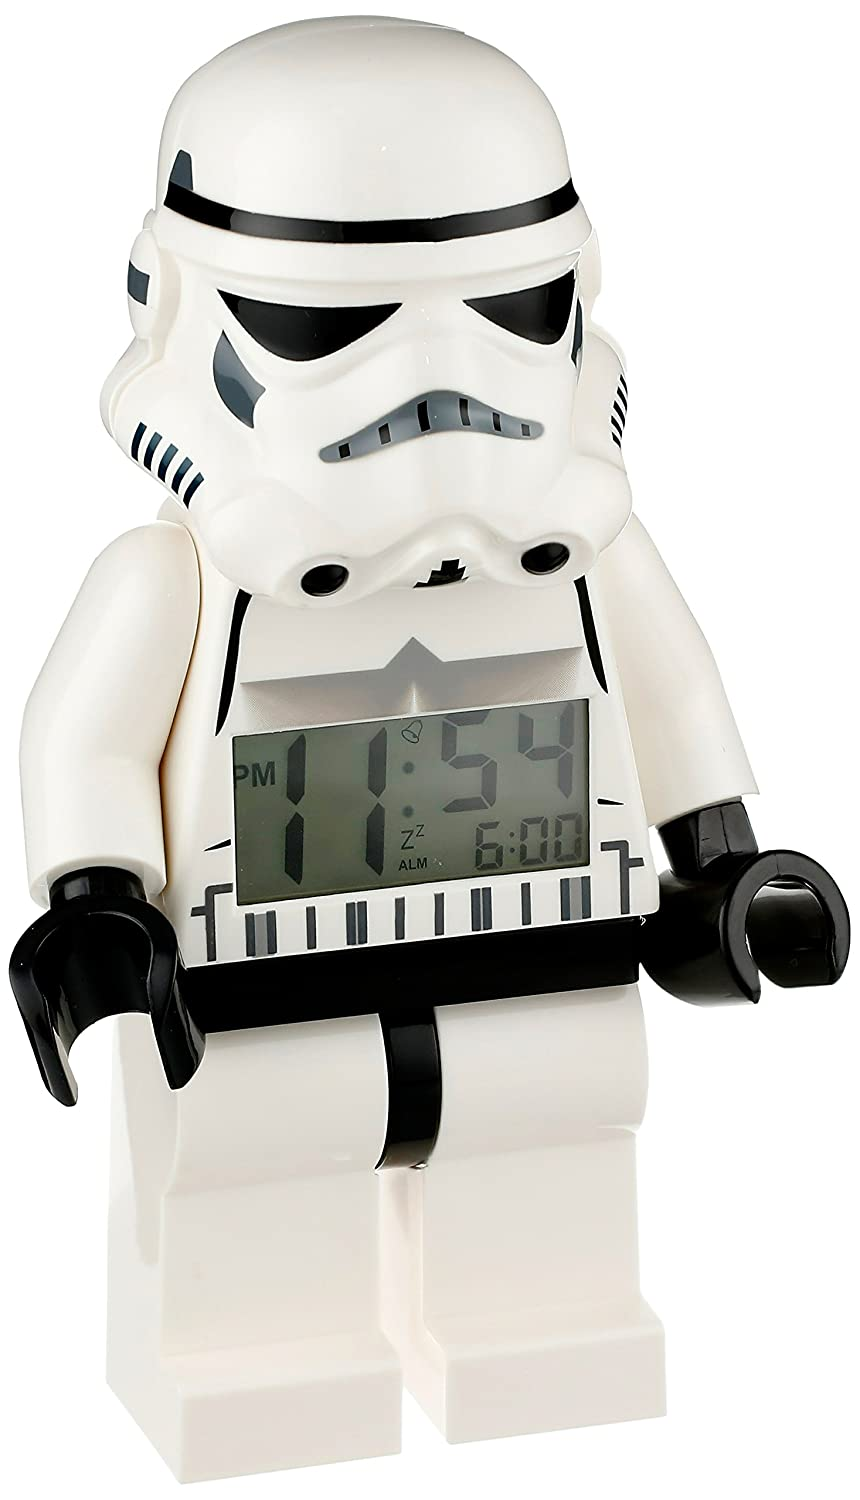 Star Wars Decor Items: LEGO Star Wars Stormtrooper Figurine Alarm Clock